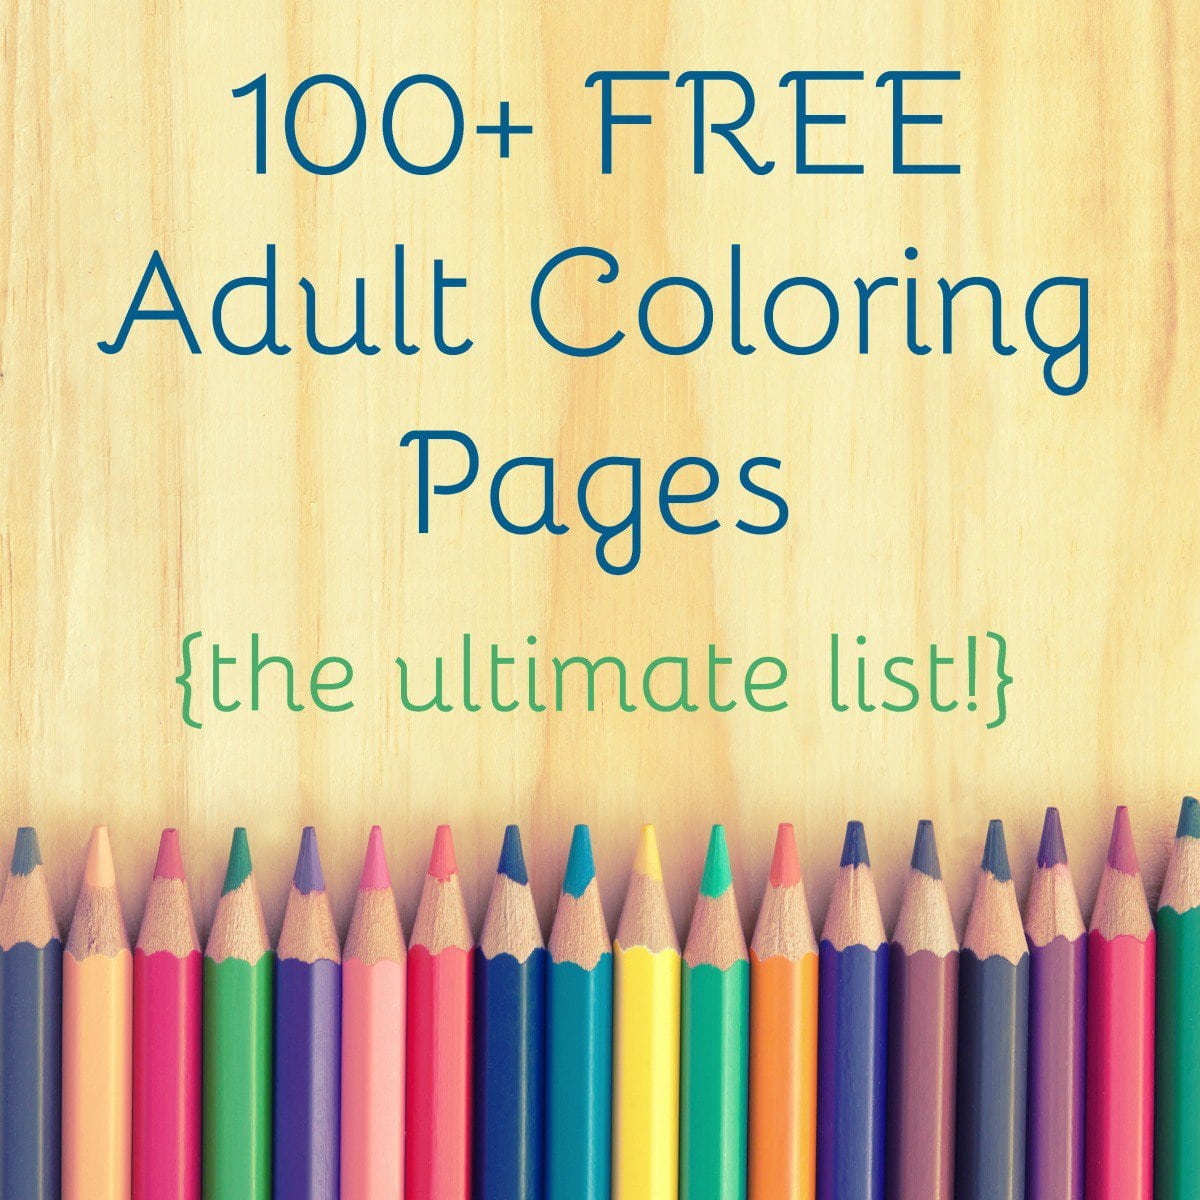 25 Free Adult Coloring Pages